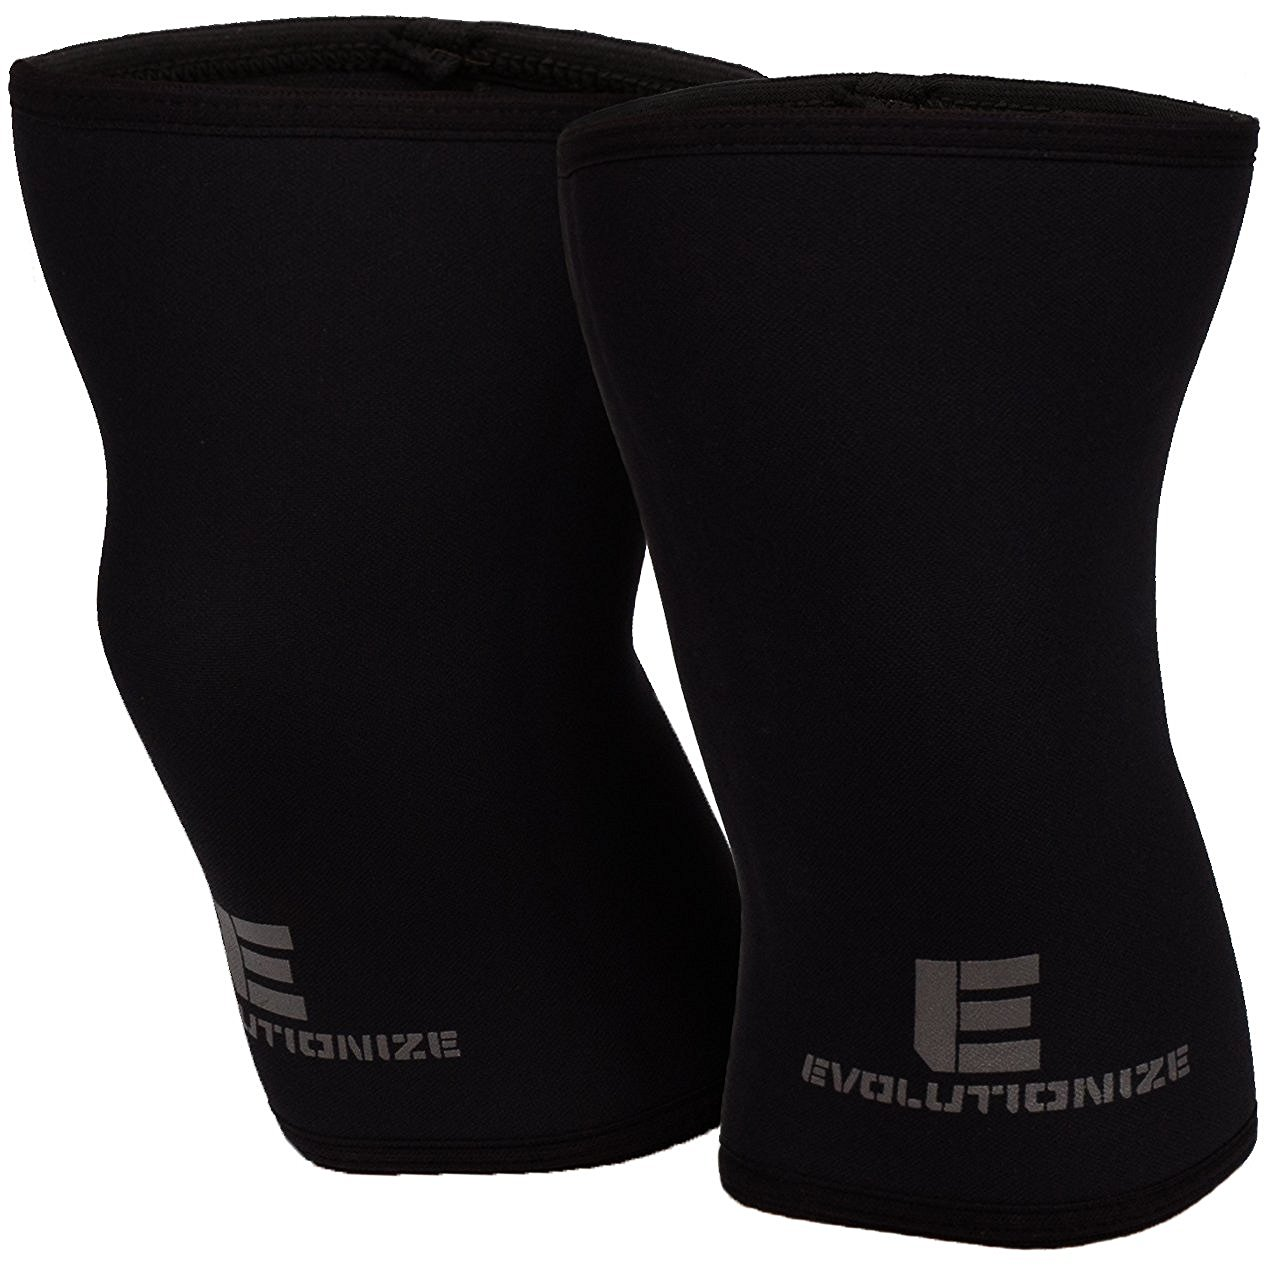 Performance 7mm Knee Sleeves